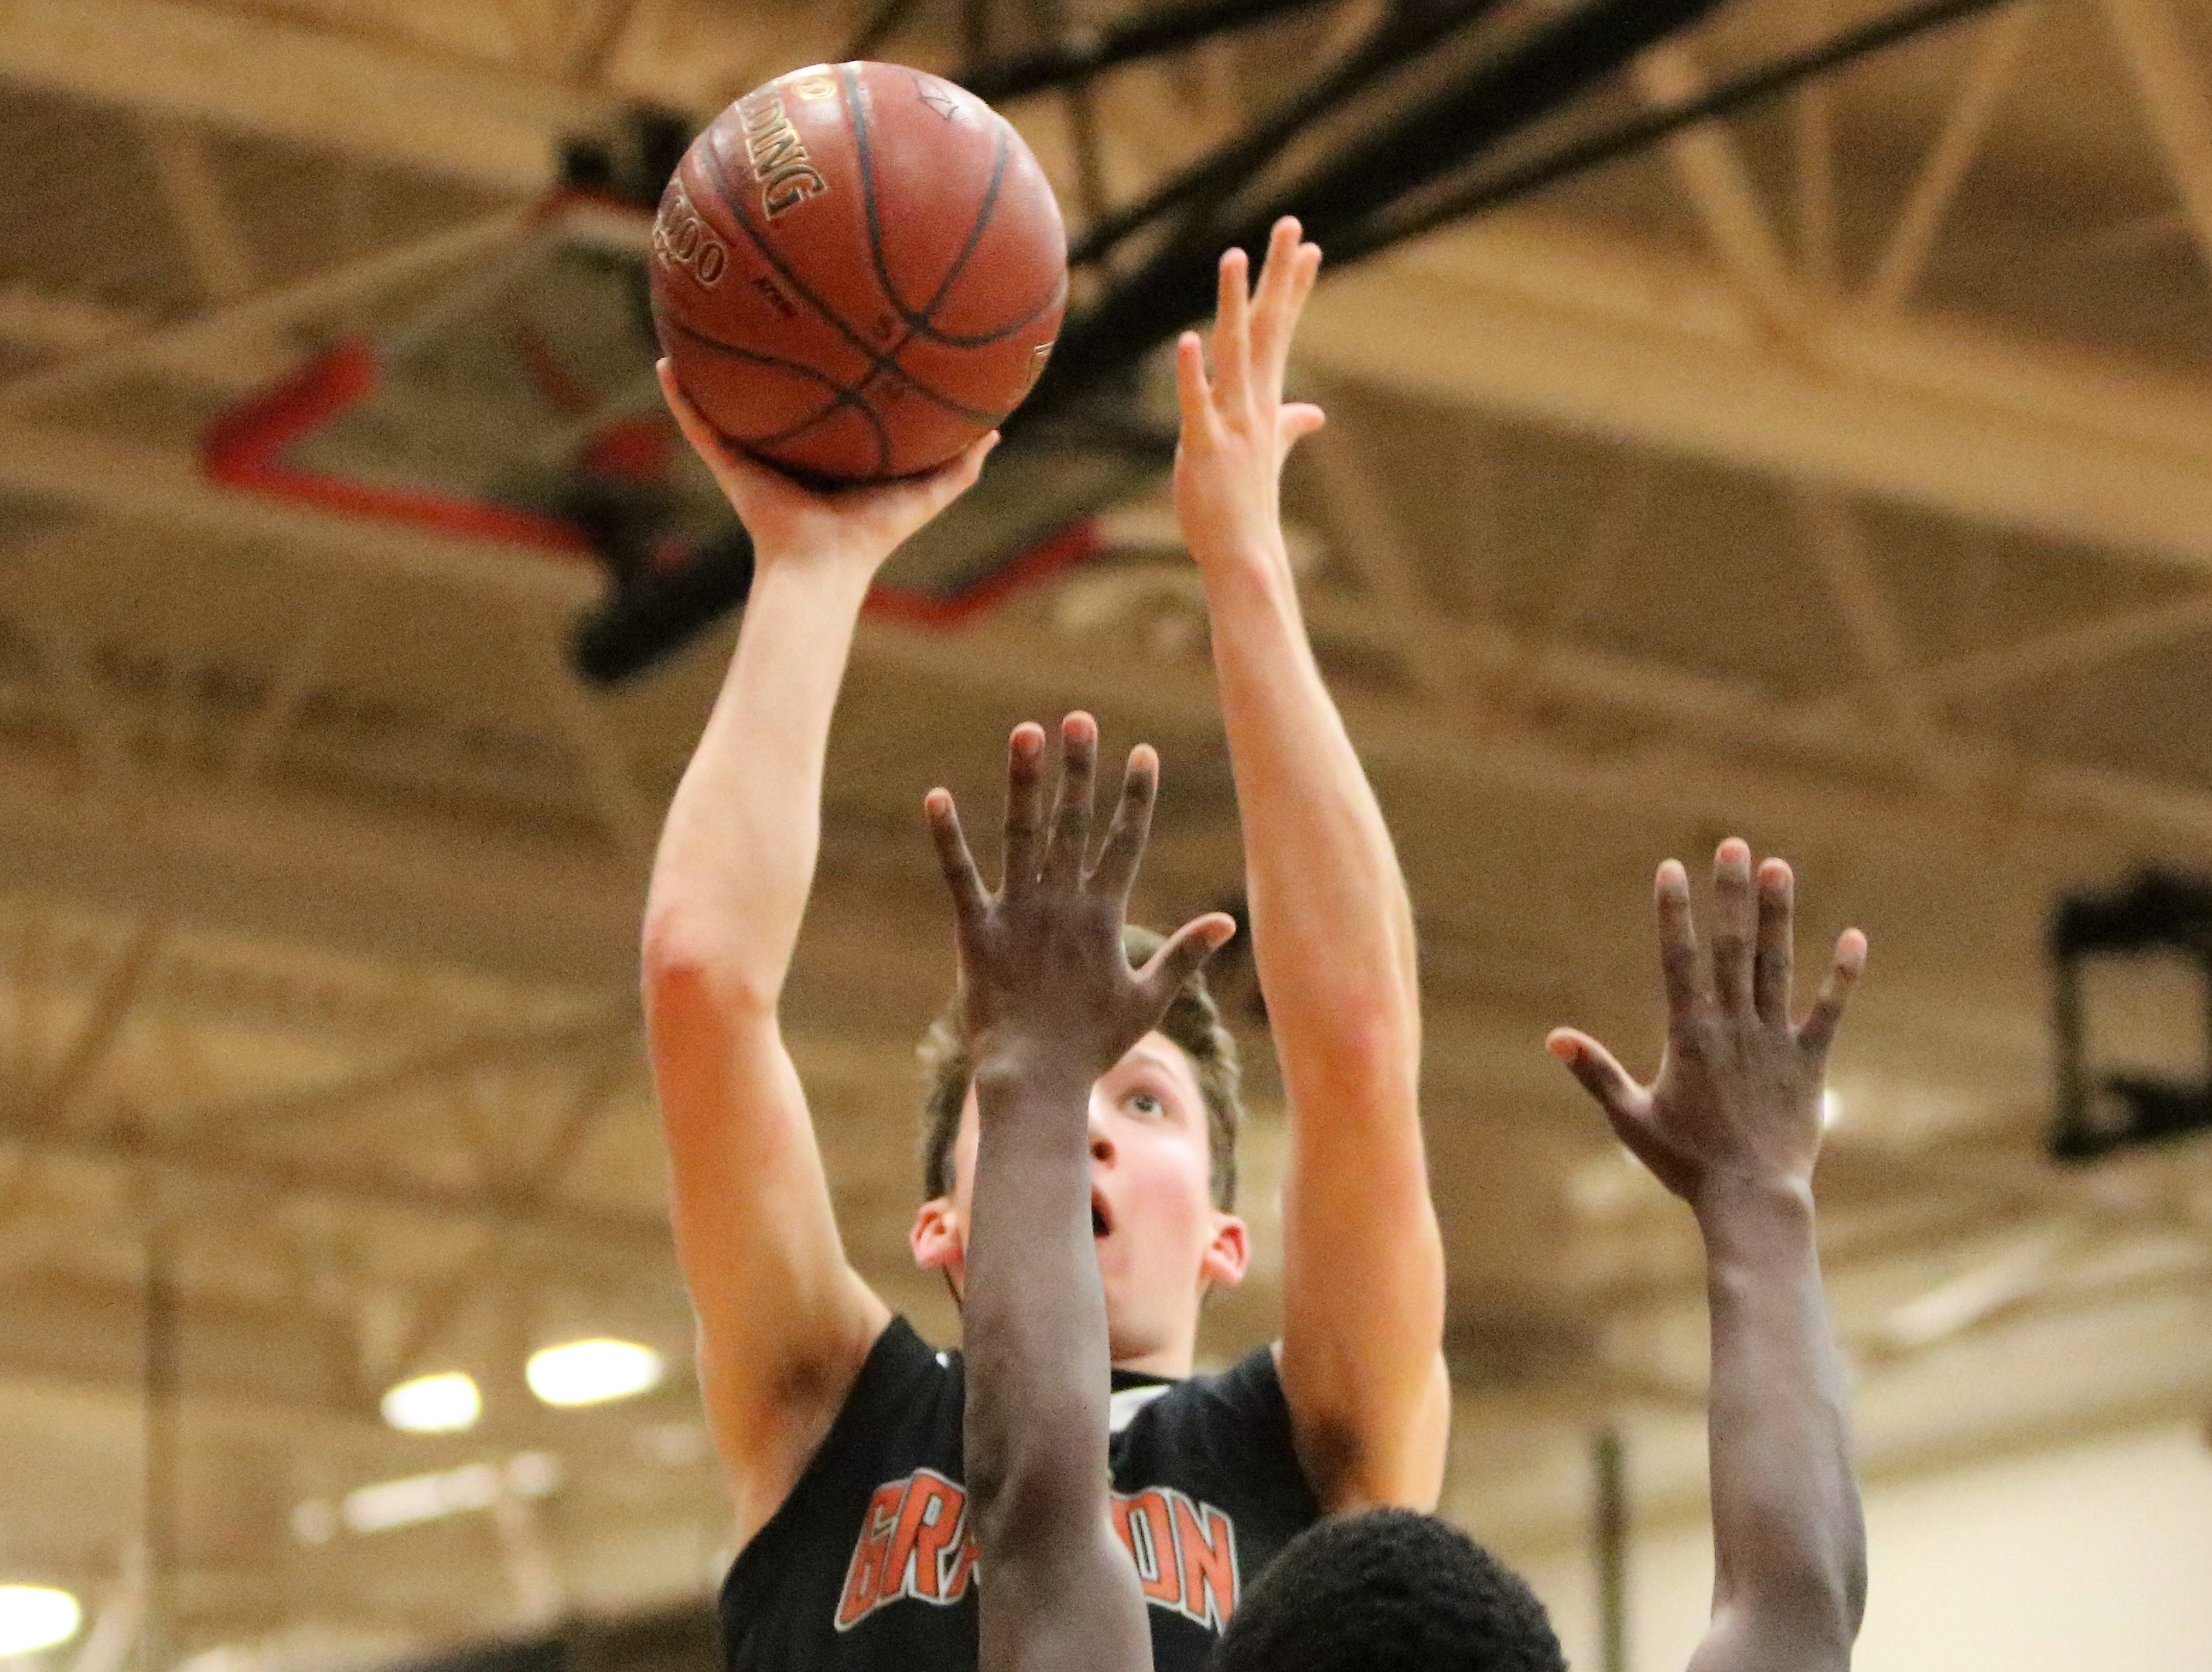 Grafton guard Jaden Polack rises up for a floater against South Milwaukee on Jan. 22, 2019.